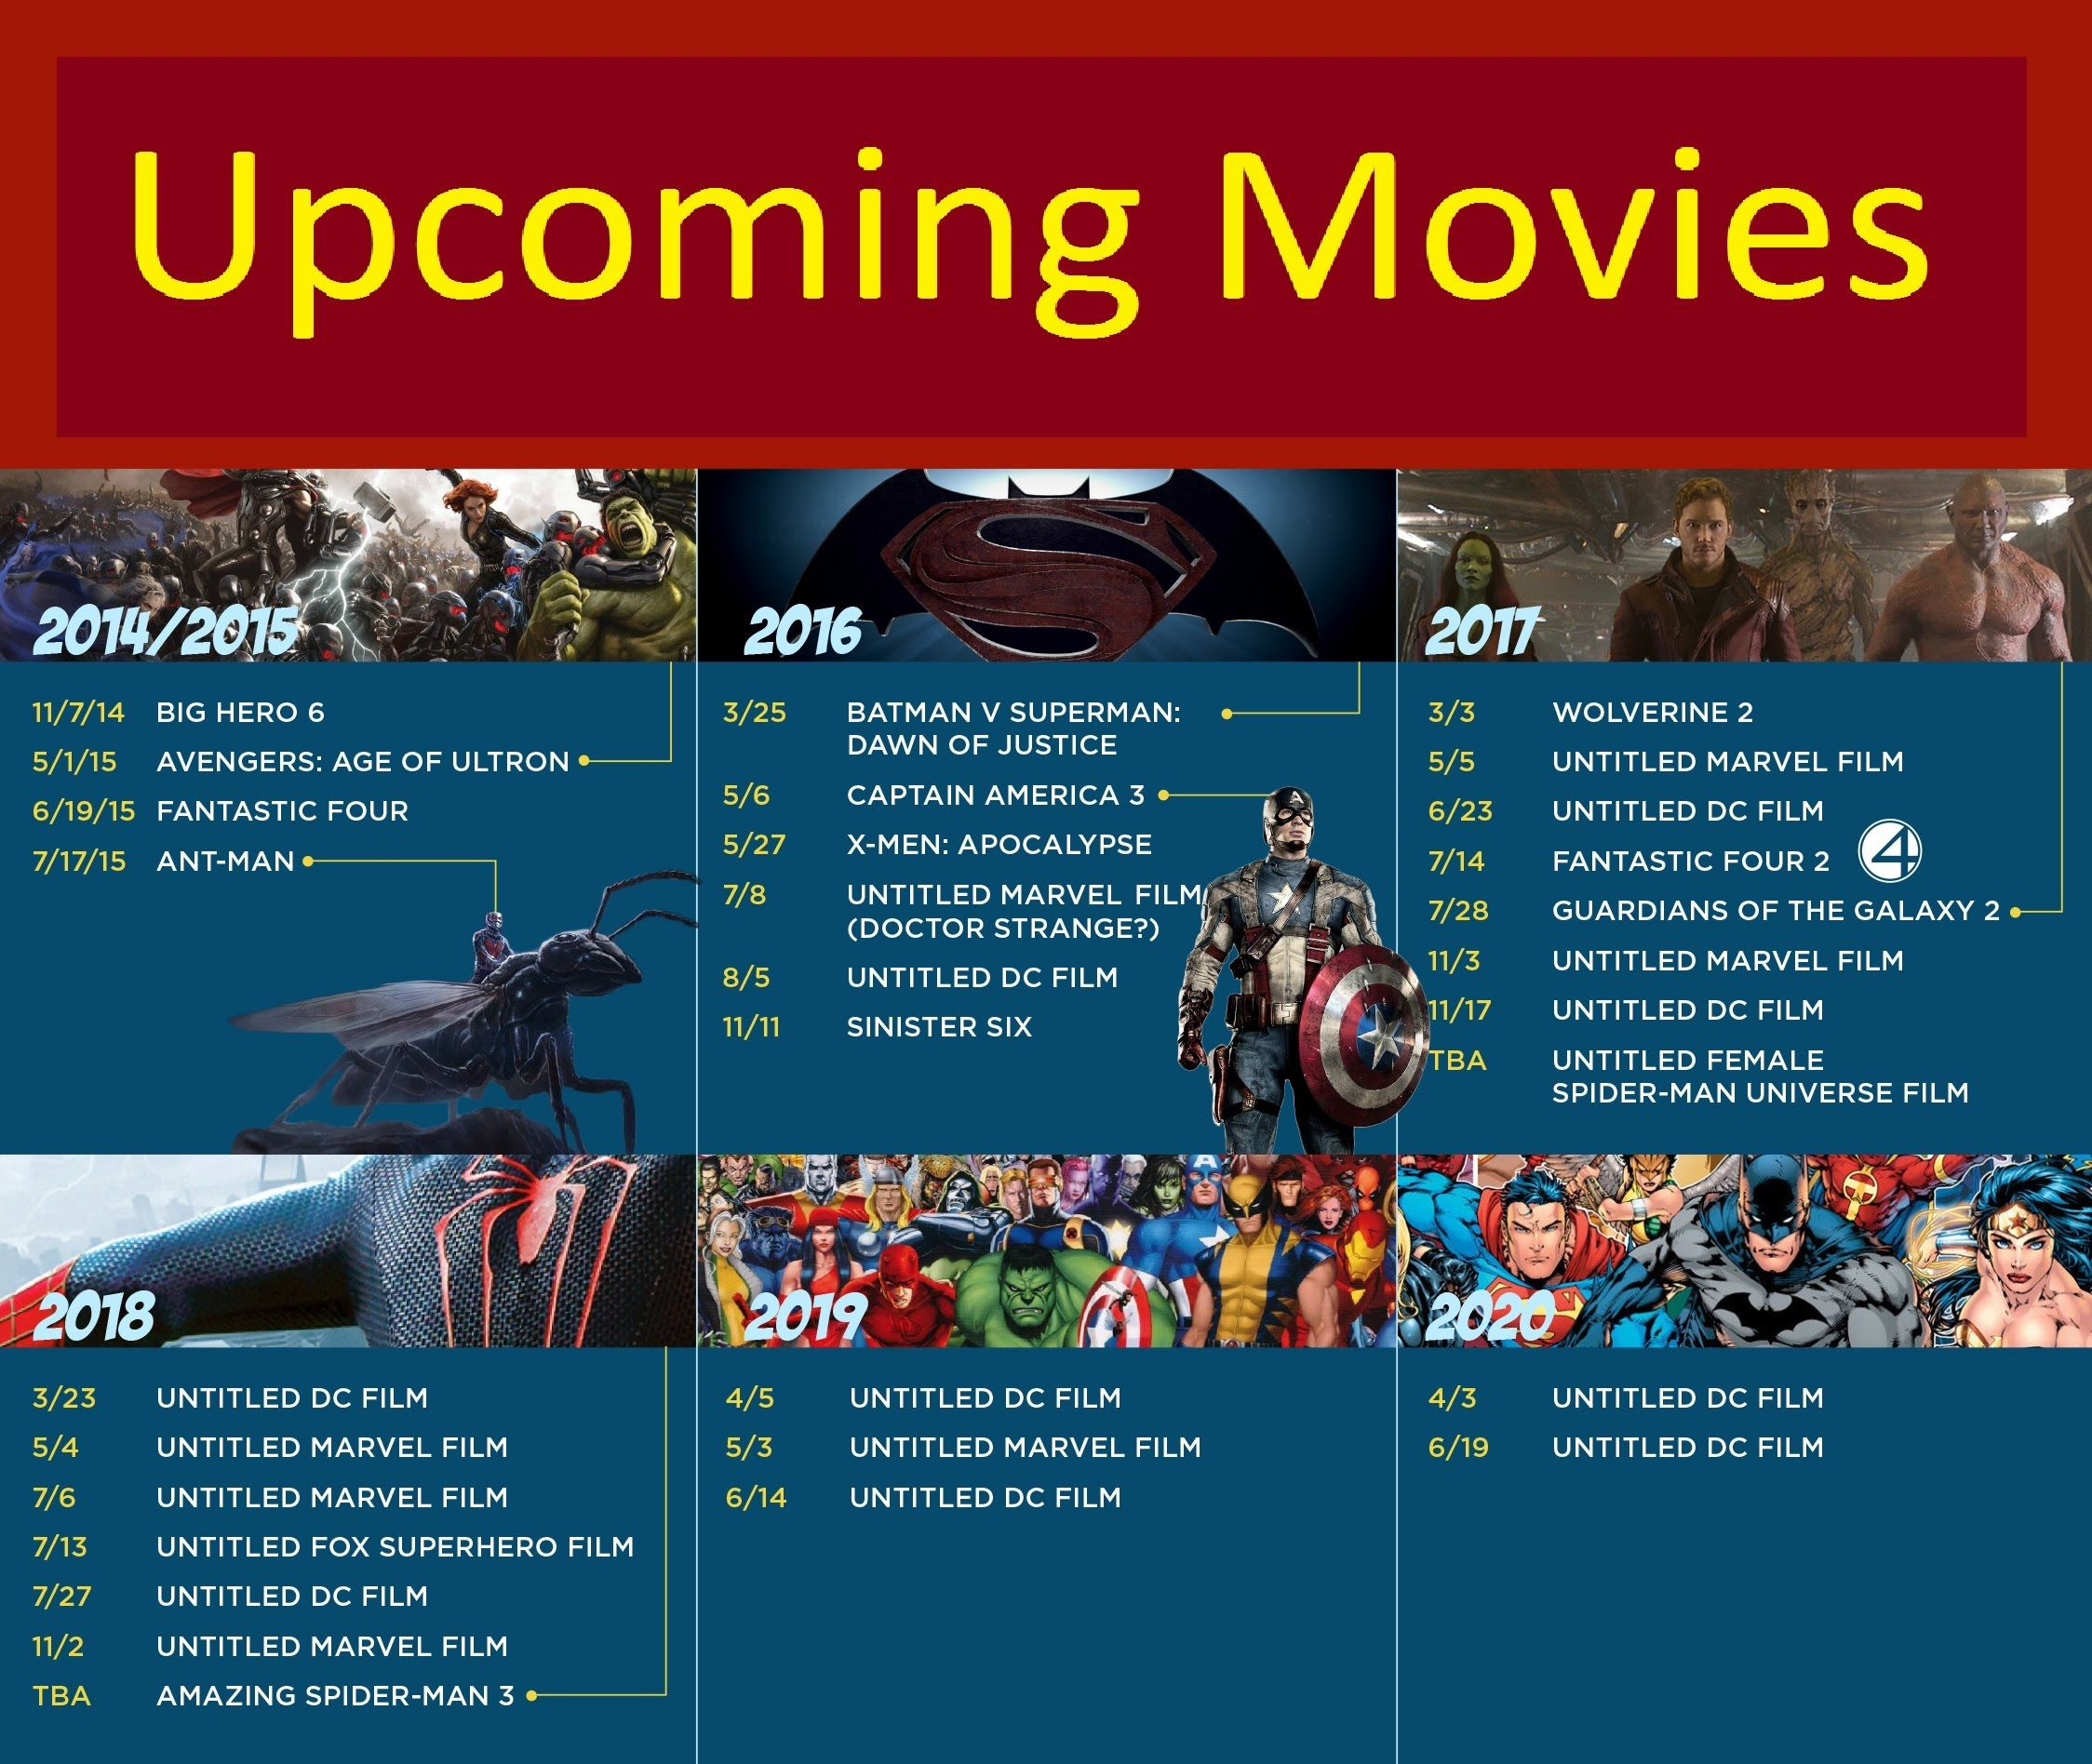 HollyWood Movies 2015, 2016, 2017, 2018, 2019